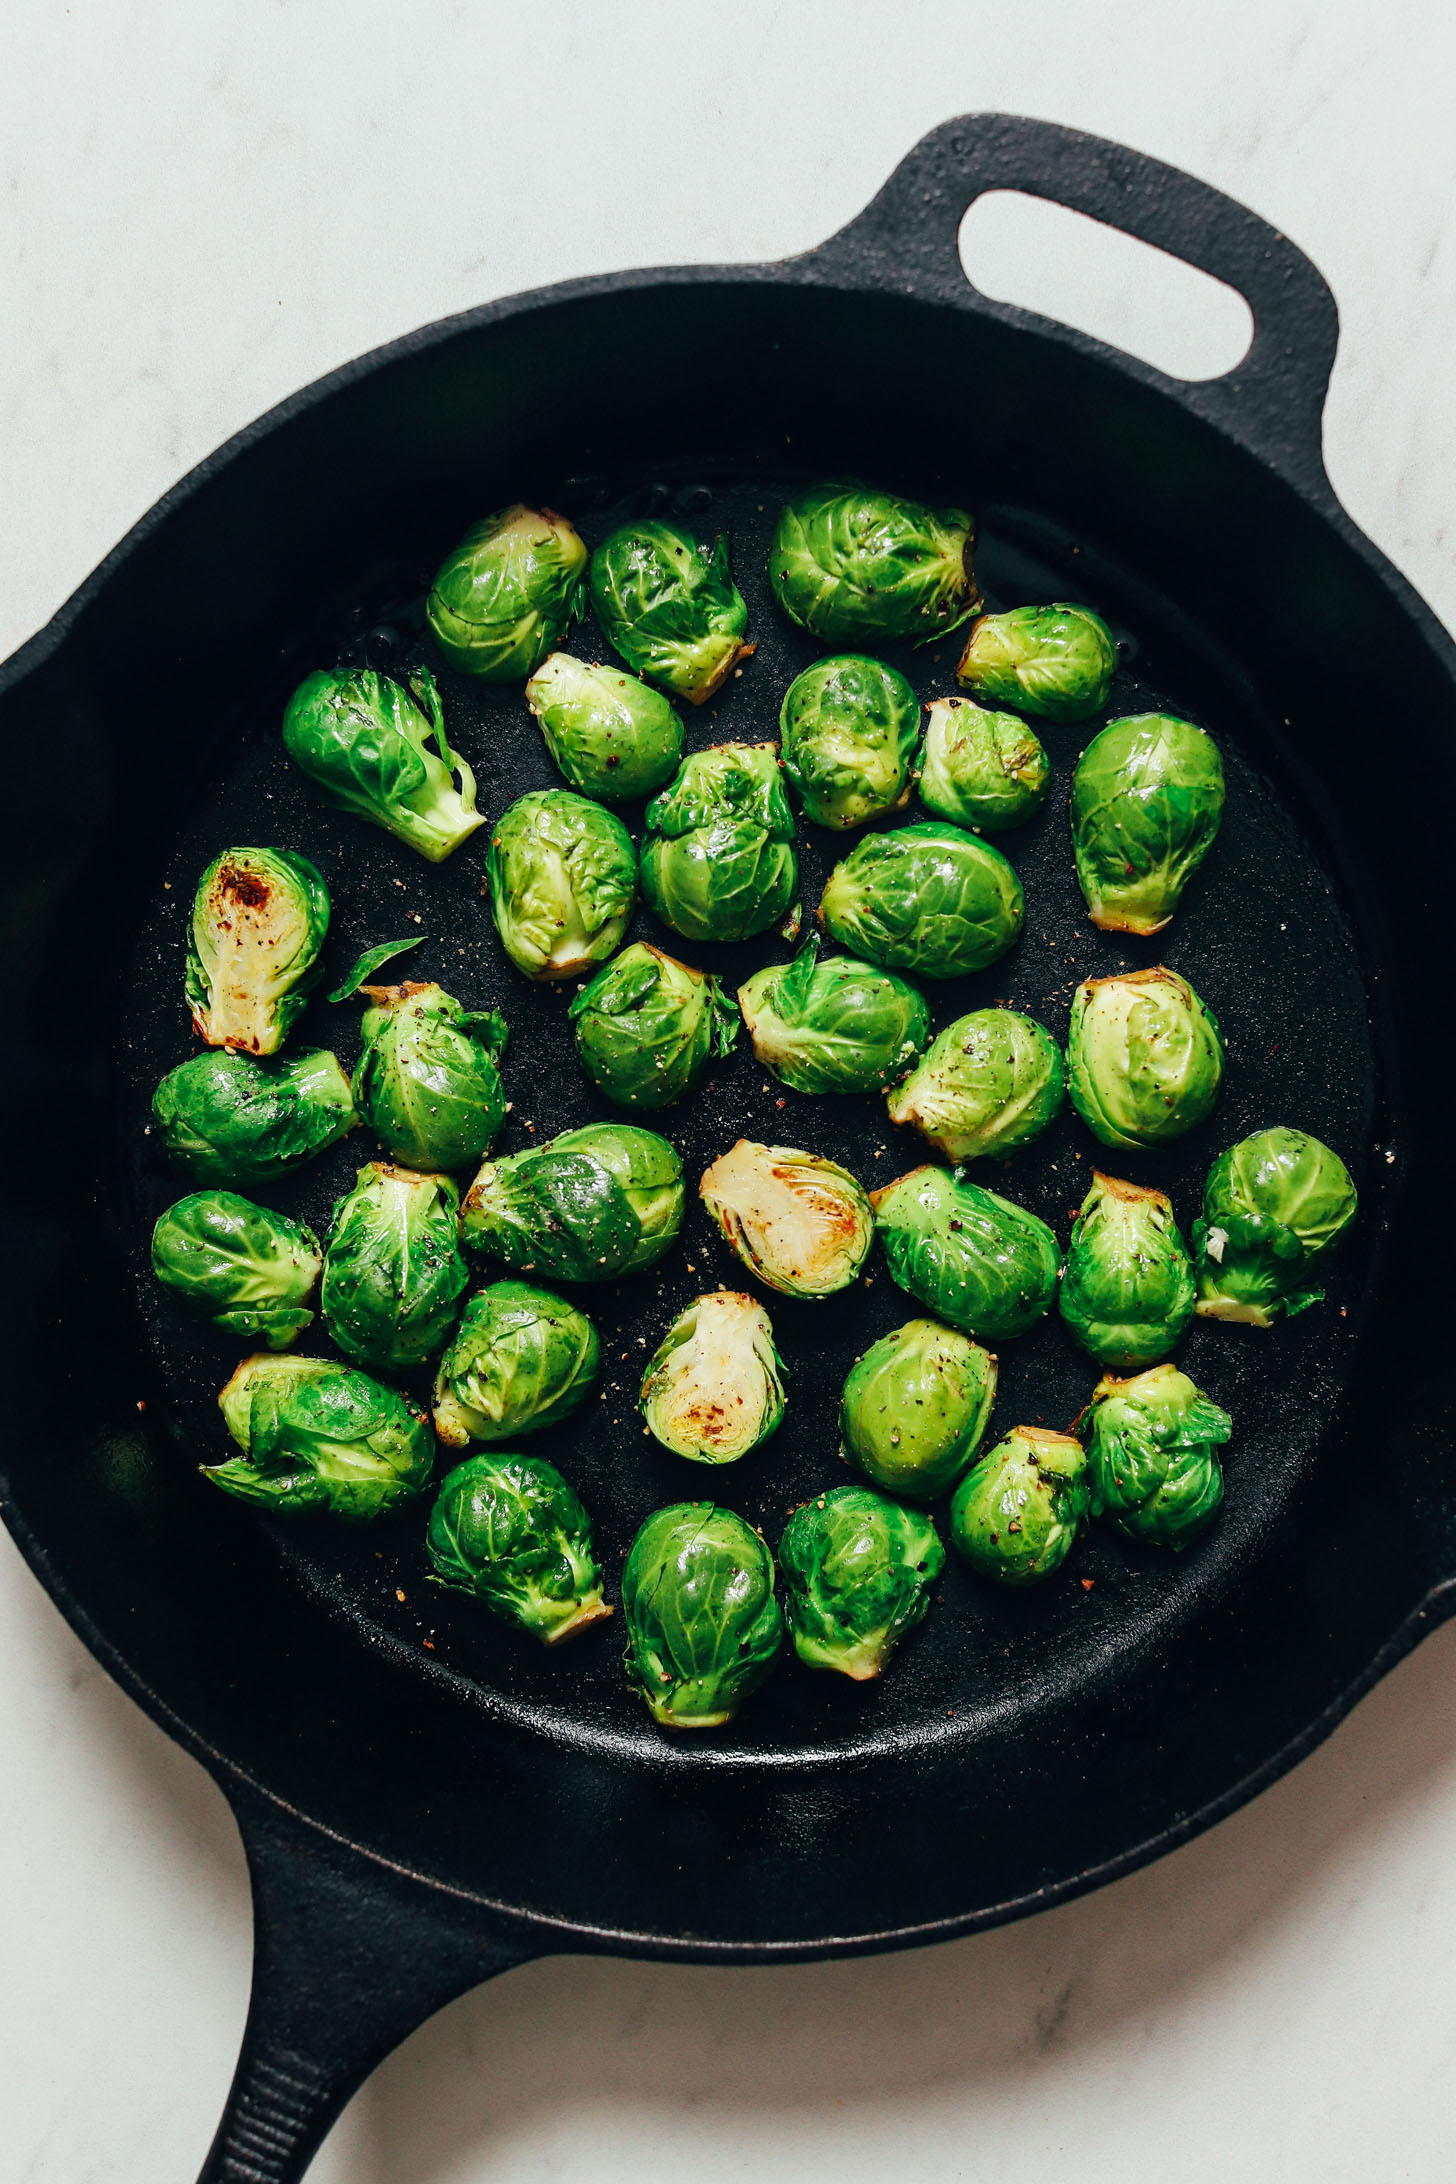 Searing Brussels sprouts in a cast iron skillet